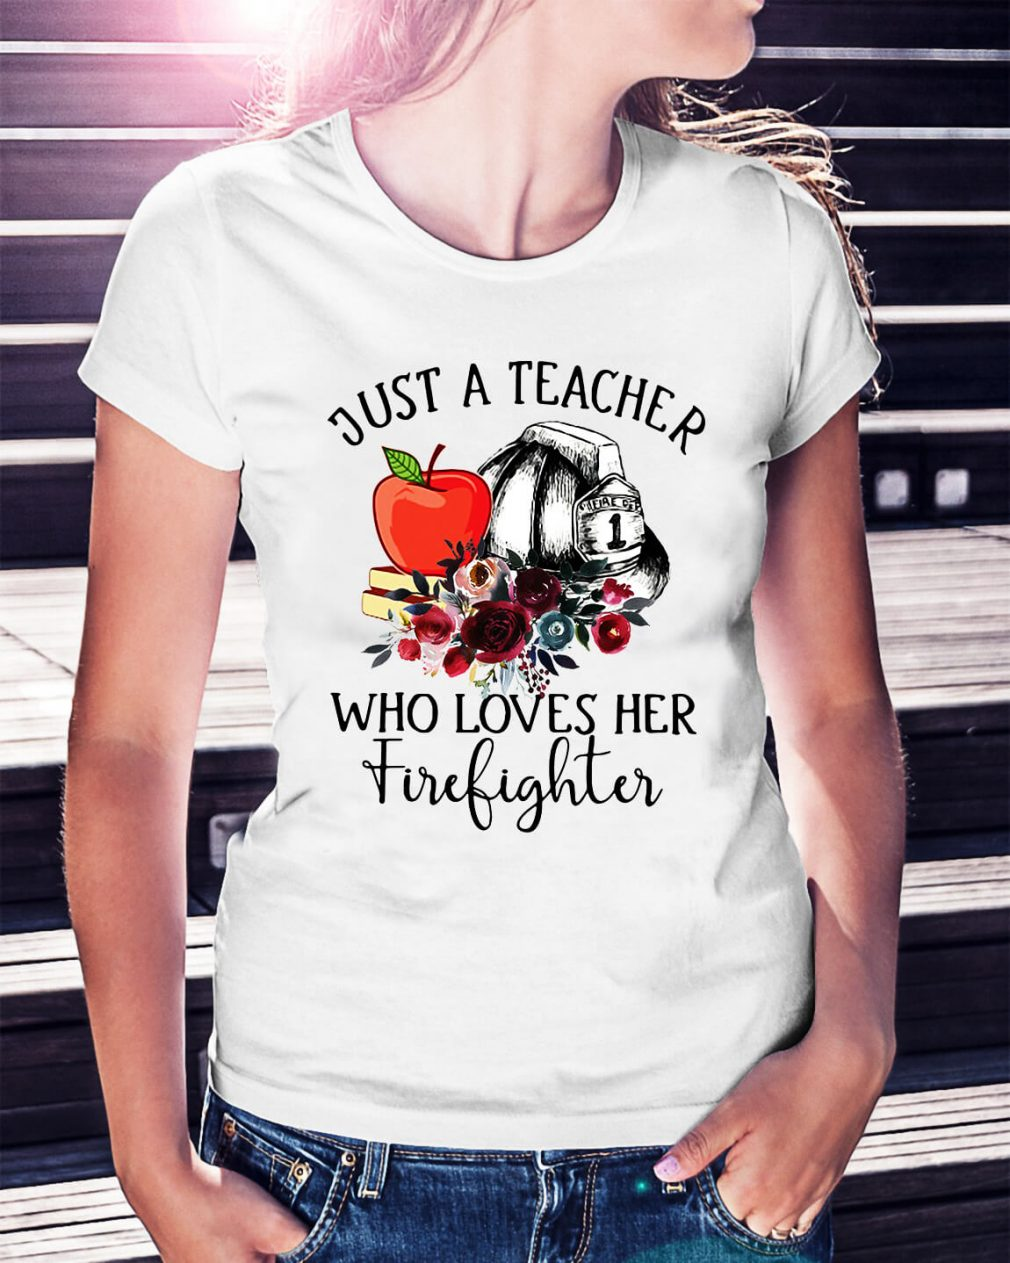 Just a teacher who loves her firefighter Ladies Tee